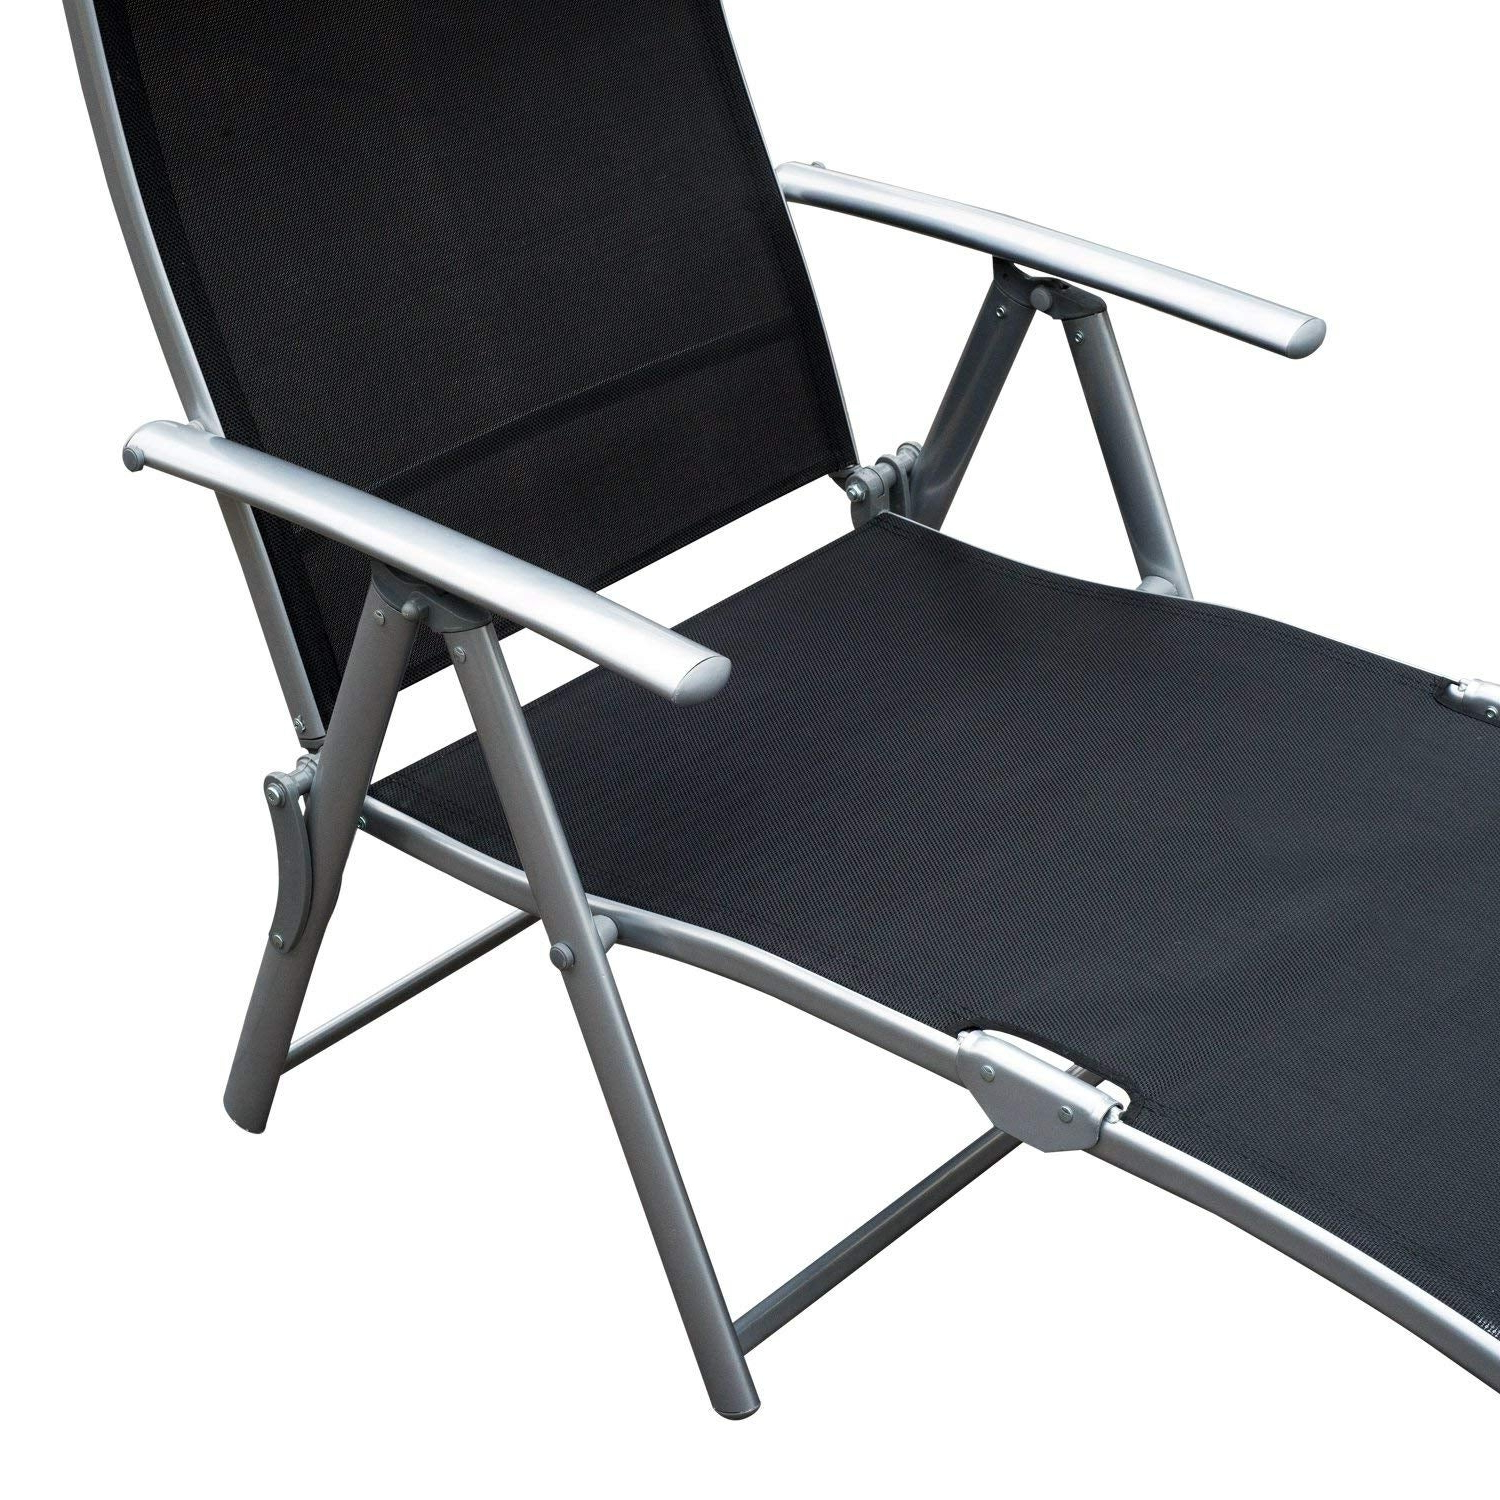 Most Recent Steel Sling Fabric Outdoor Folding Chaise Lounges Regarding Outsunny Steel Sling Fabric Outdoor Folding Chaise Lounge Chair Recliner –  Black (View 10 of 25)